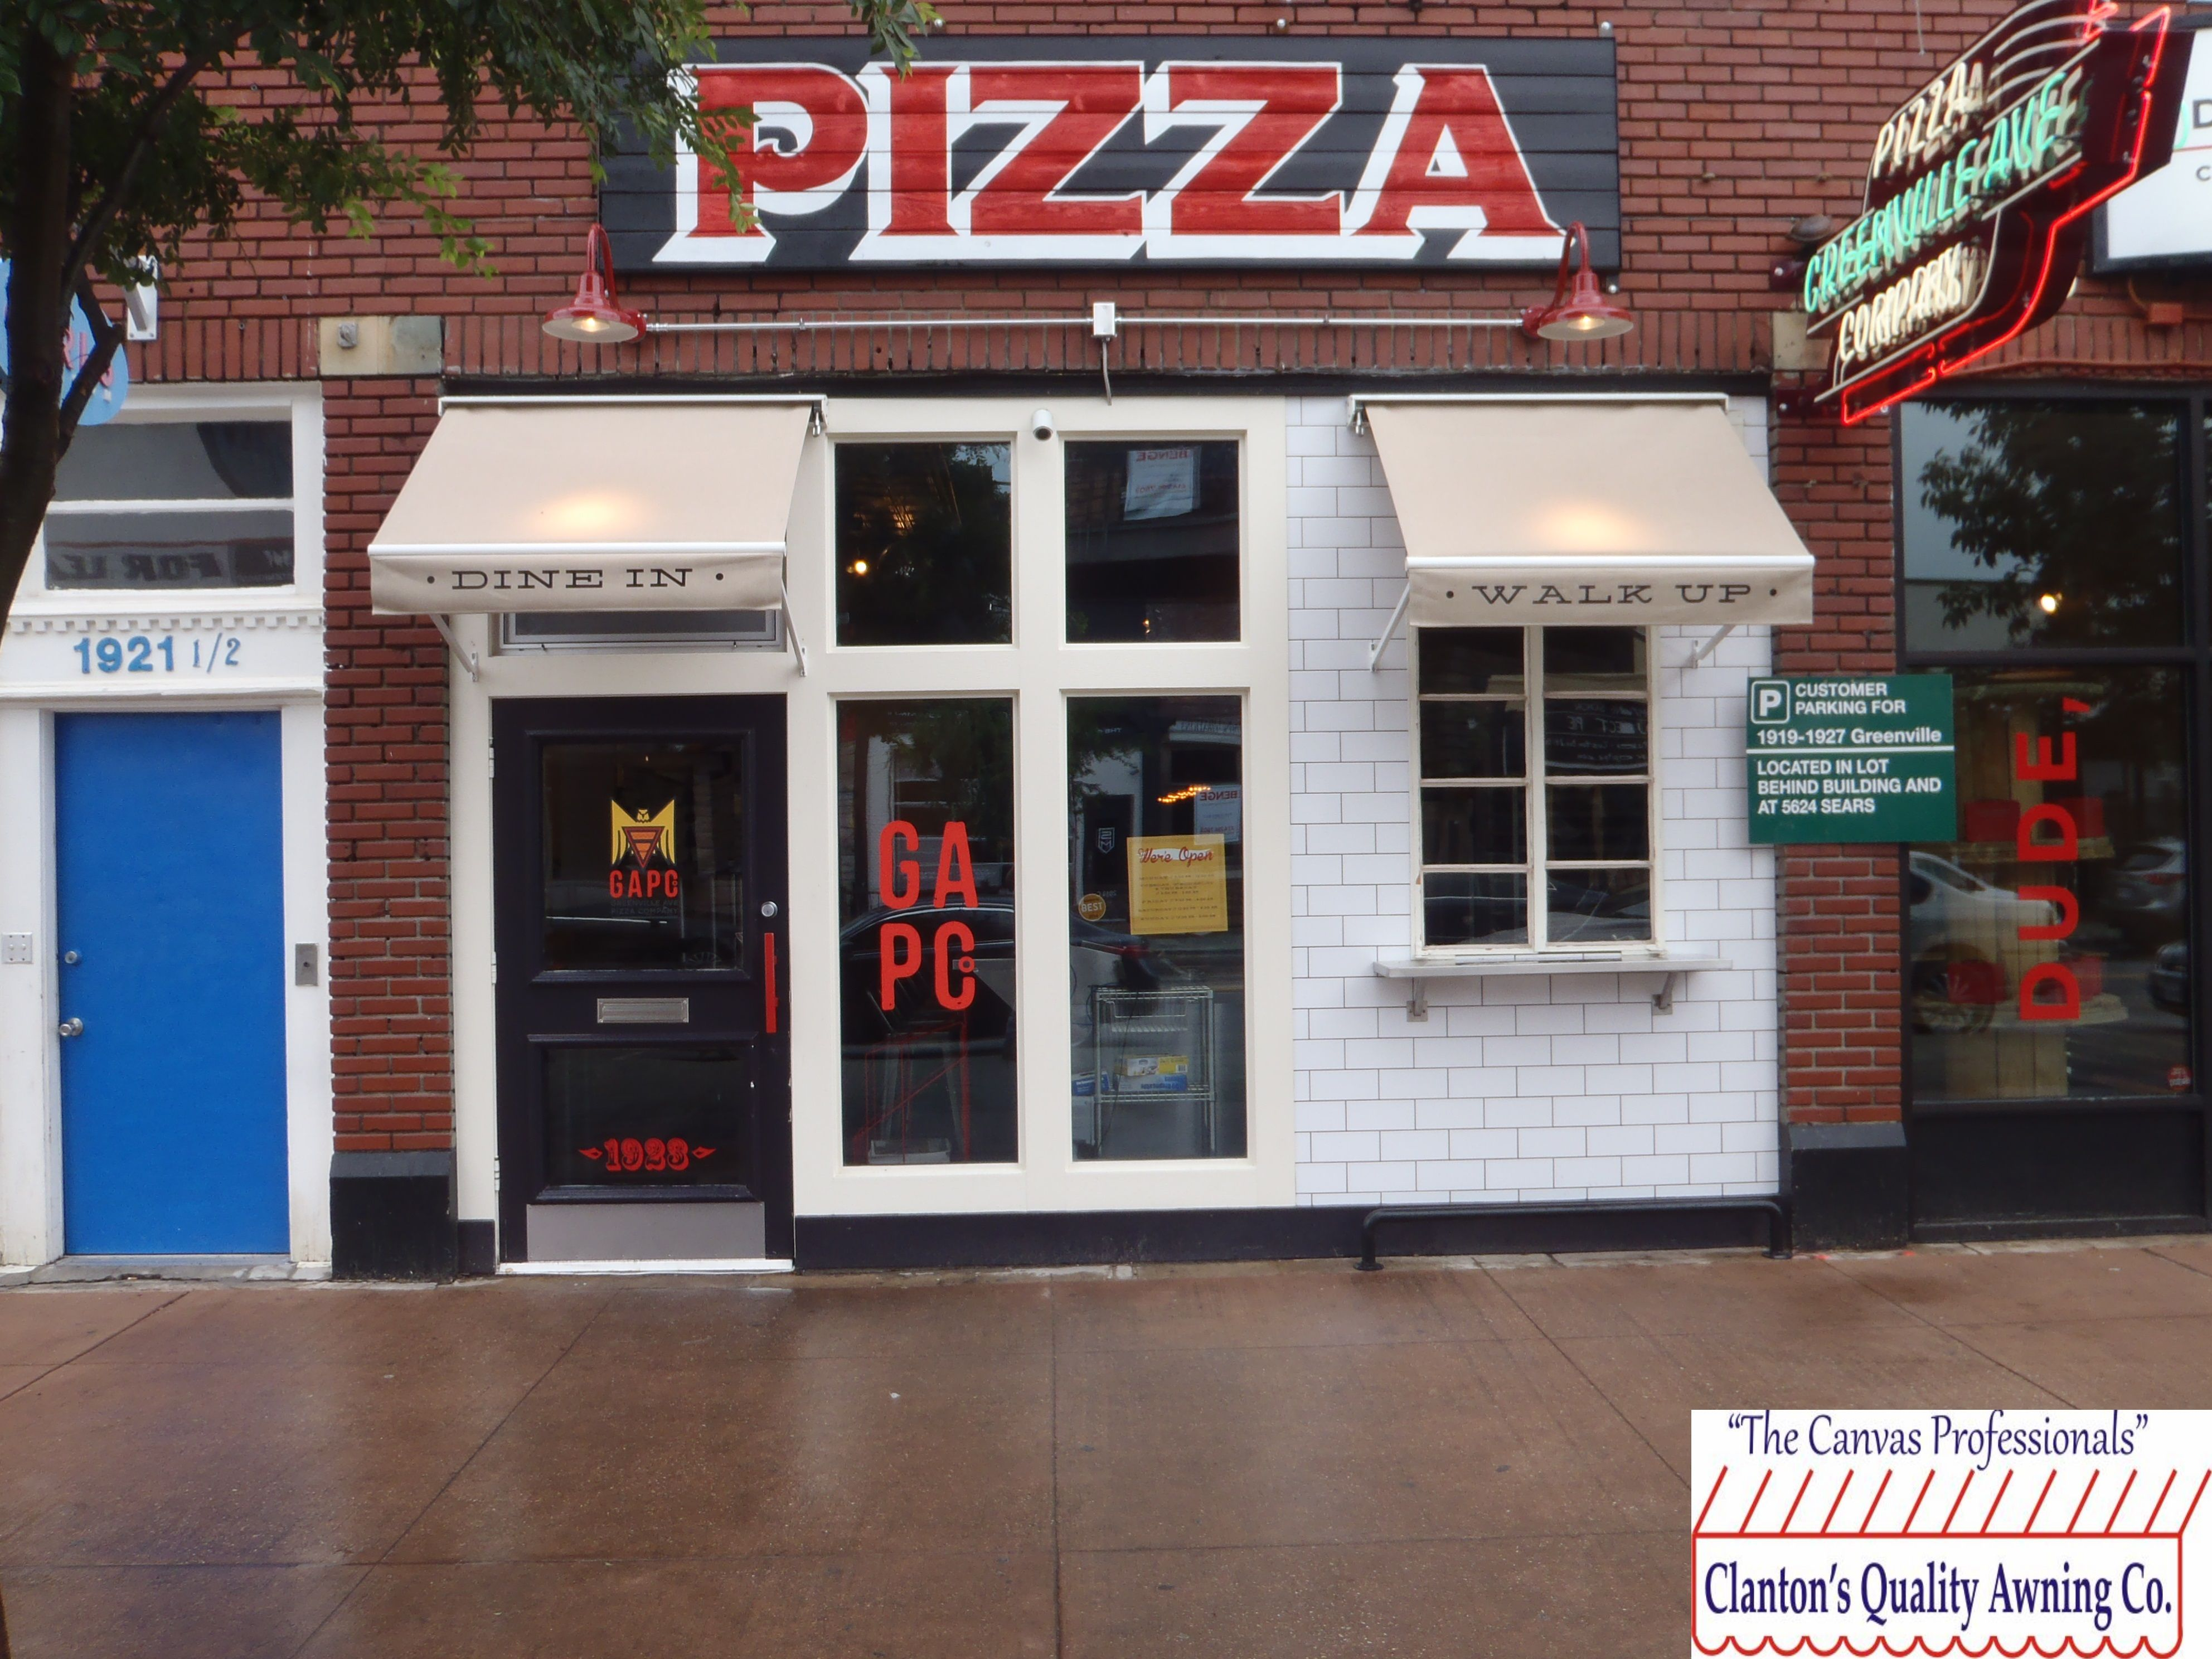 Commercial Awnings Over Store Front Window And Door ...